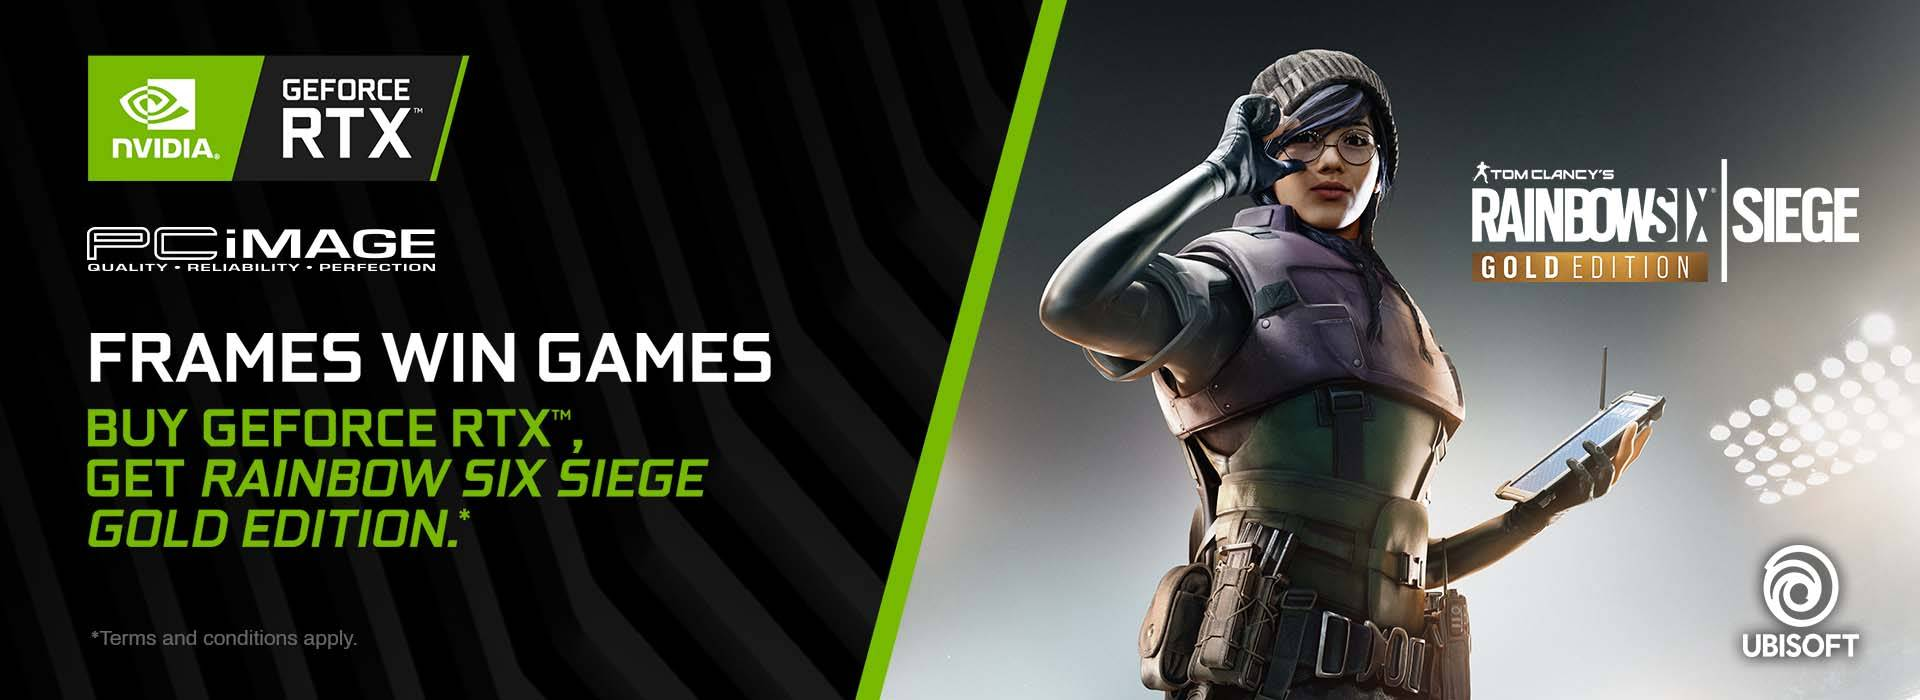 FRAMES WIN GAMES BUY GEFORCE RTX™, GET TOM CLANCY'S RAINBOW SIX® SIEGE GOLD EDITION.*